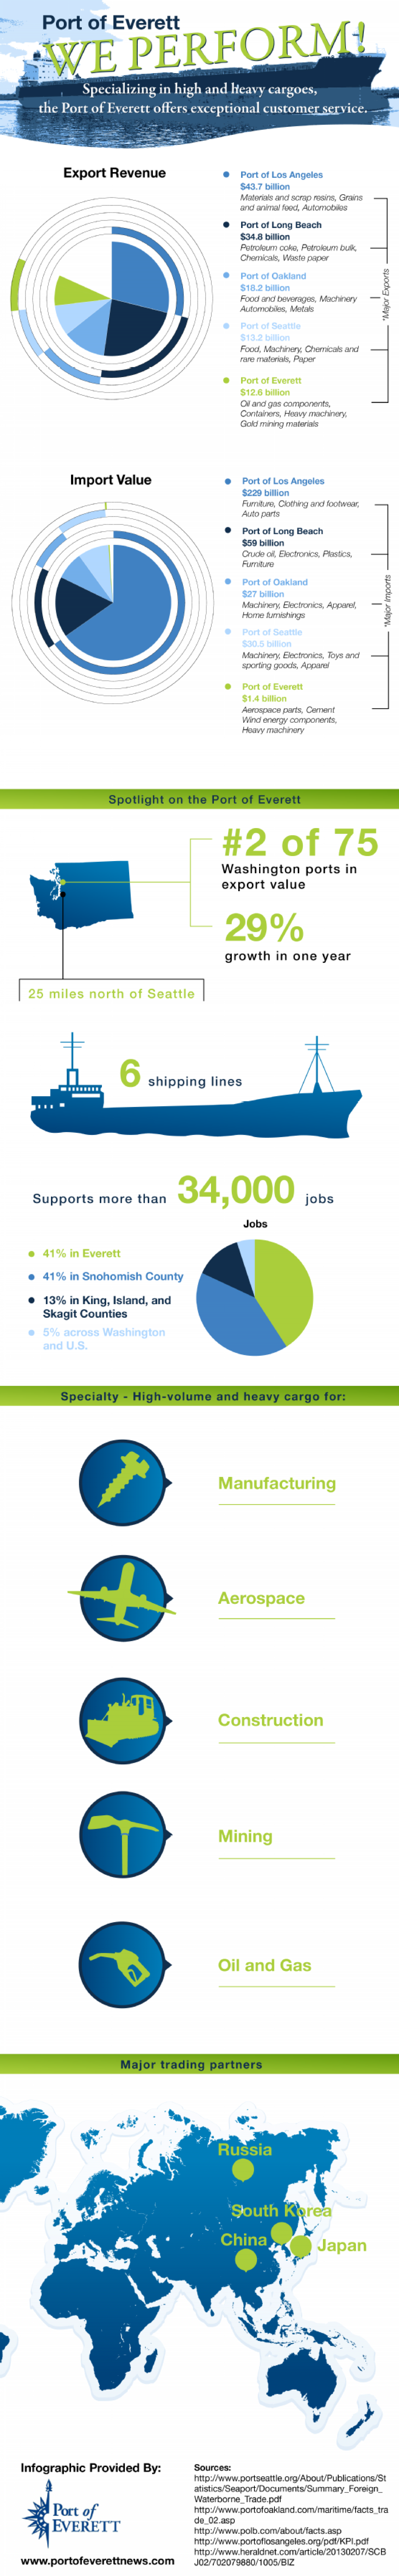 Top West Coast Ports Infographic